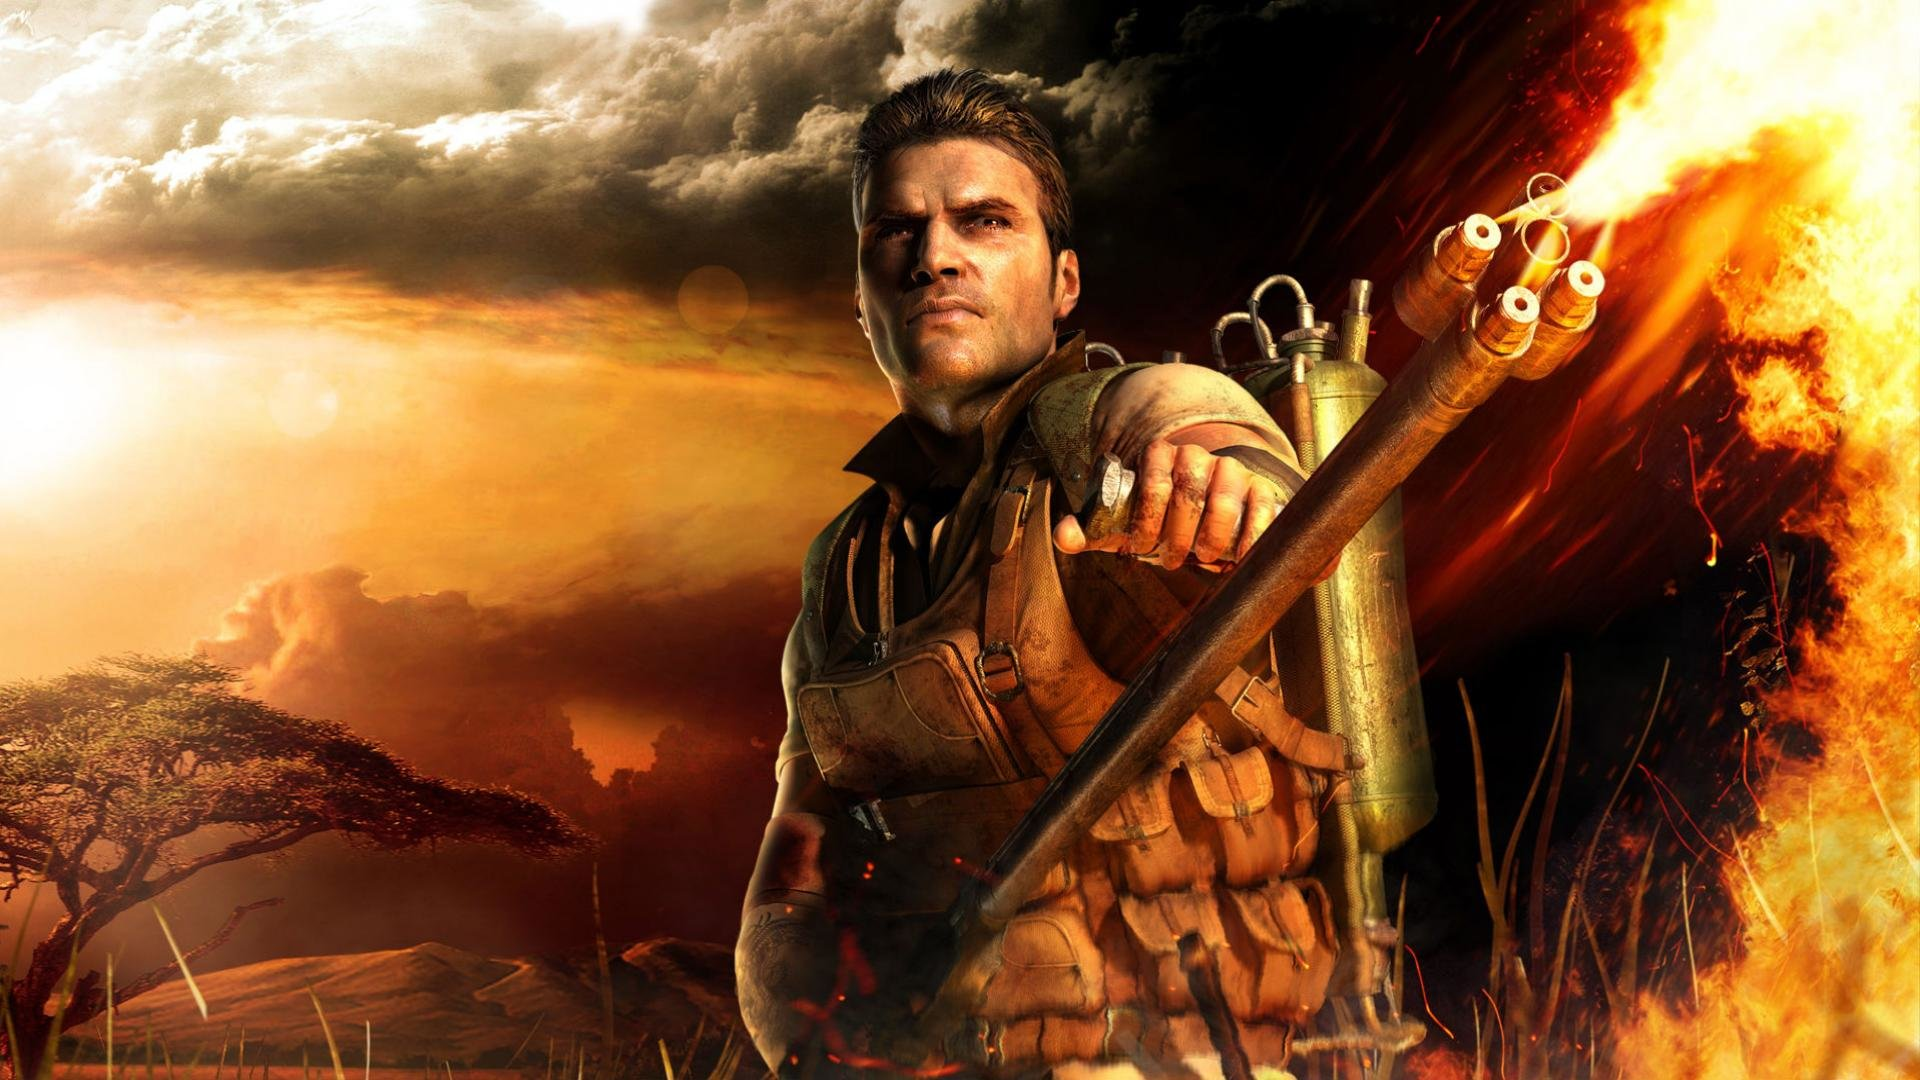 Far Cry 2 Wallpapers 1920x1080 Full Hd 1080p Desktop Backgrounds